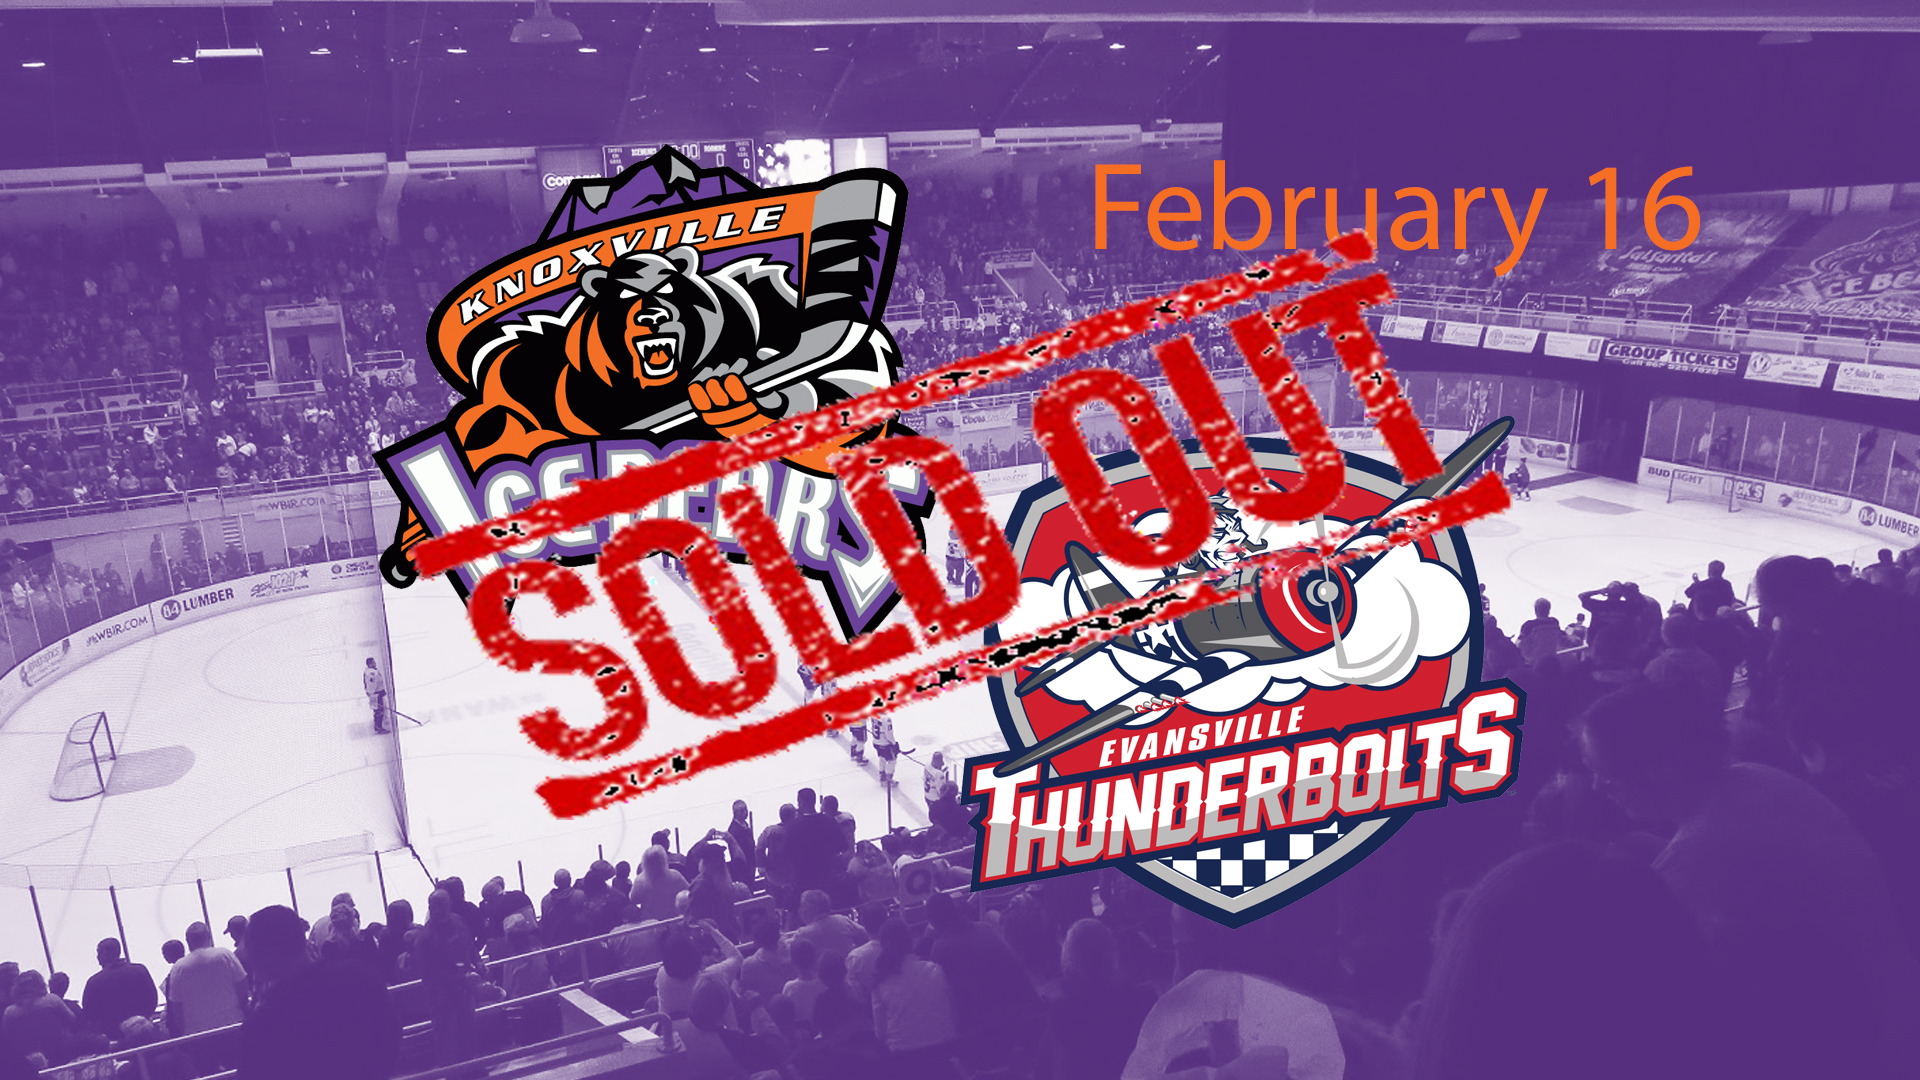 Knoxville Ice Bears vs Evansville Thunderbolts (SOLD OUT)